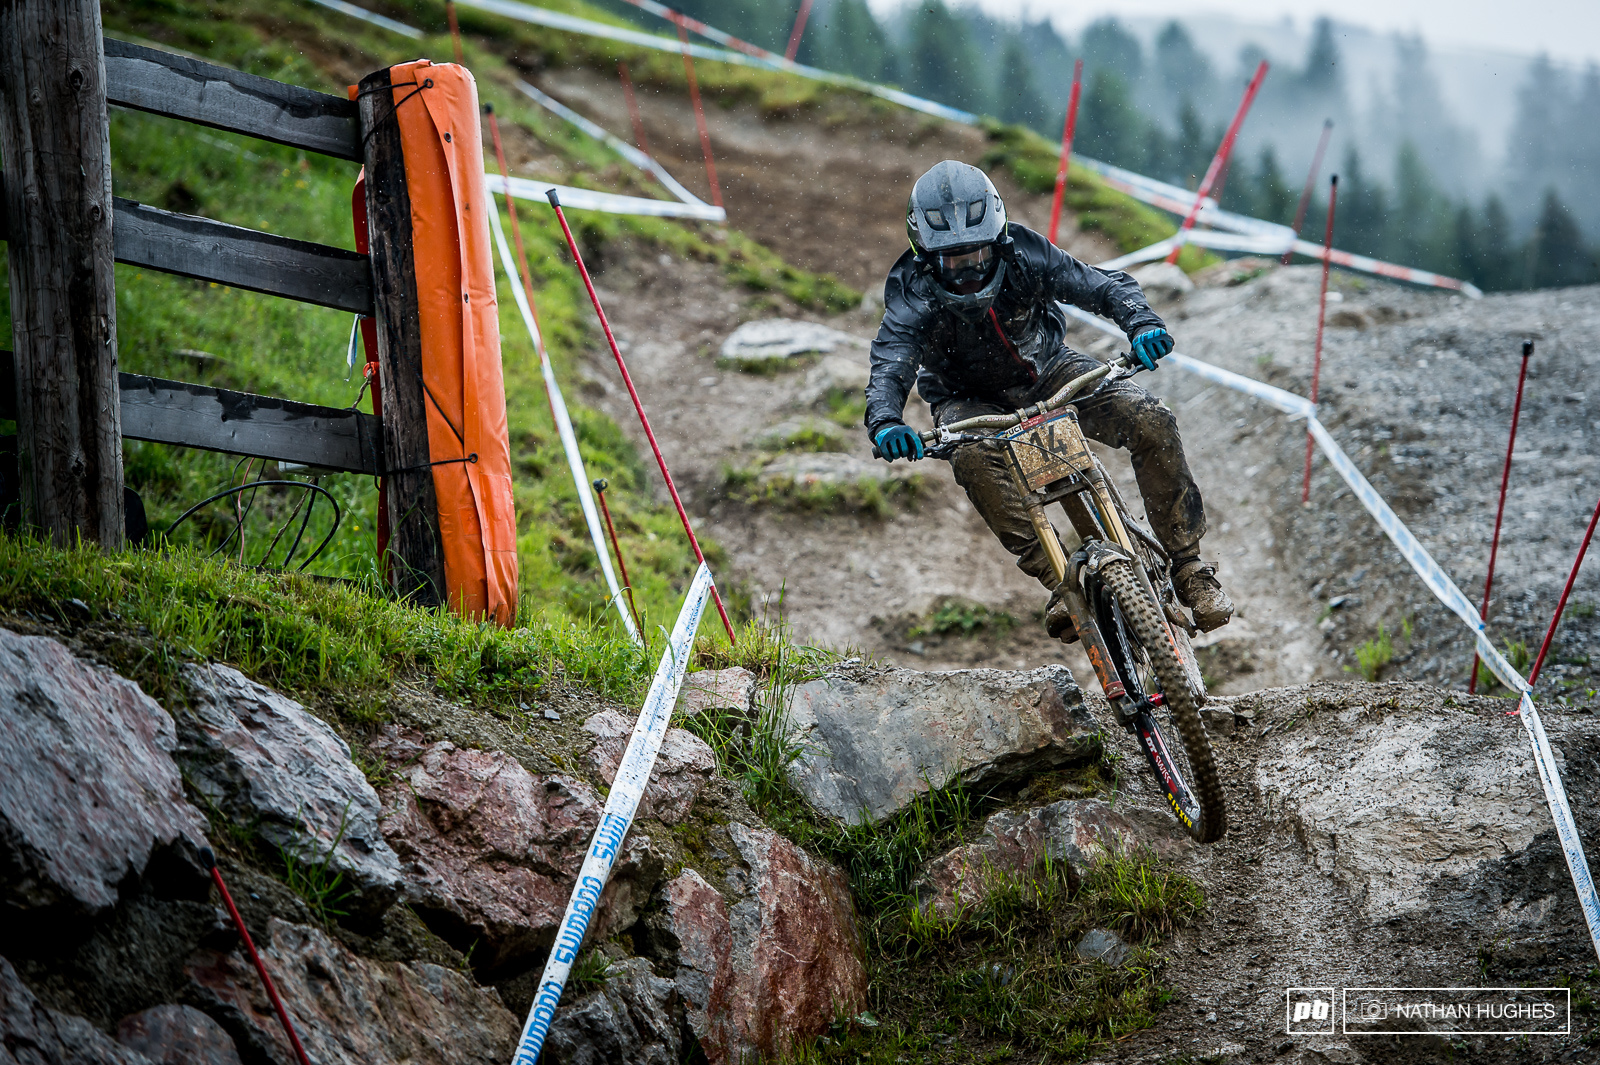 Mondraker s Laurie Greenland had a bit of a nightmare up there on track today coming off and riding home dead last... Not the end the end of the world though as a protected rider. Tomorrow its on.